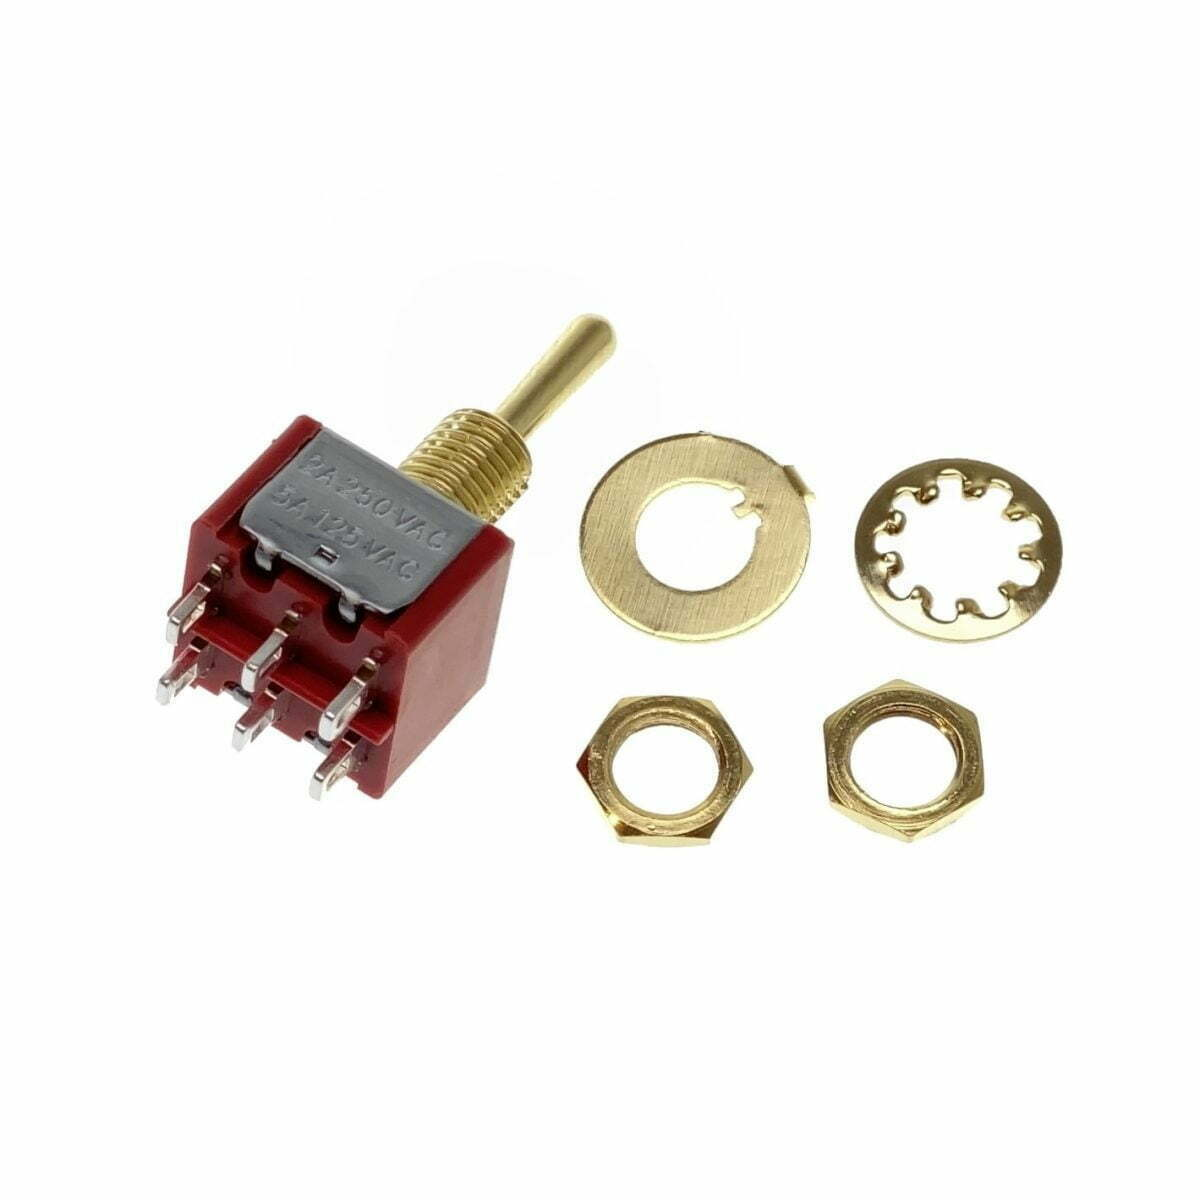 Gold DPDT On-On-On Toggle Switch [Round Bat]